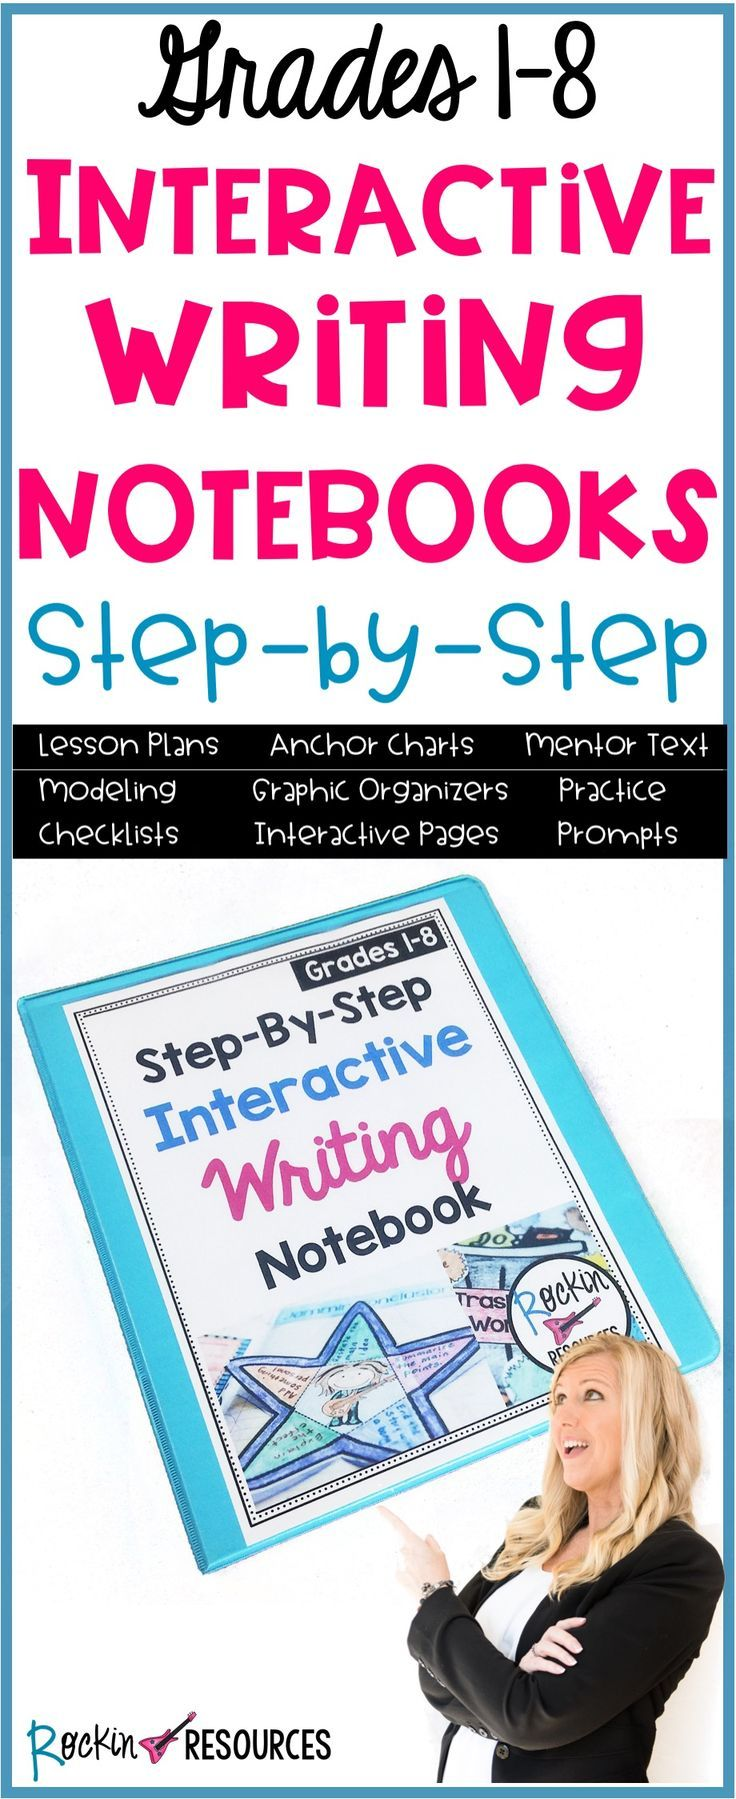 This writing curriculum will guide you through a year of writing lessons on paragraph writing, narrative writing, opinion writing, and informative writing. It is a COMPLETE writing workshop with step-by-step mini lessons which build upon each other. This gives students a thorough understanding of how to effectively use the writing process. Mentor text, modeling and interactive notebooks are key components to the success of this program. Students are engaged and excited to write!